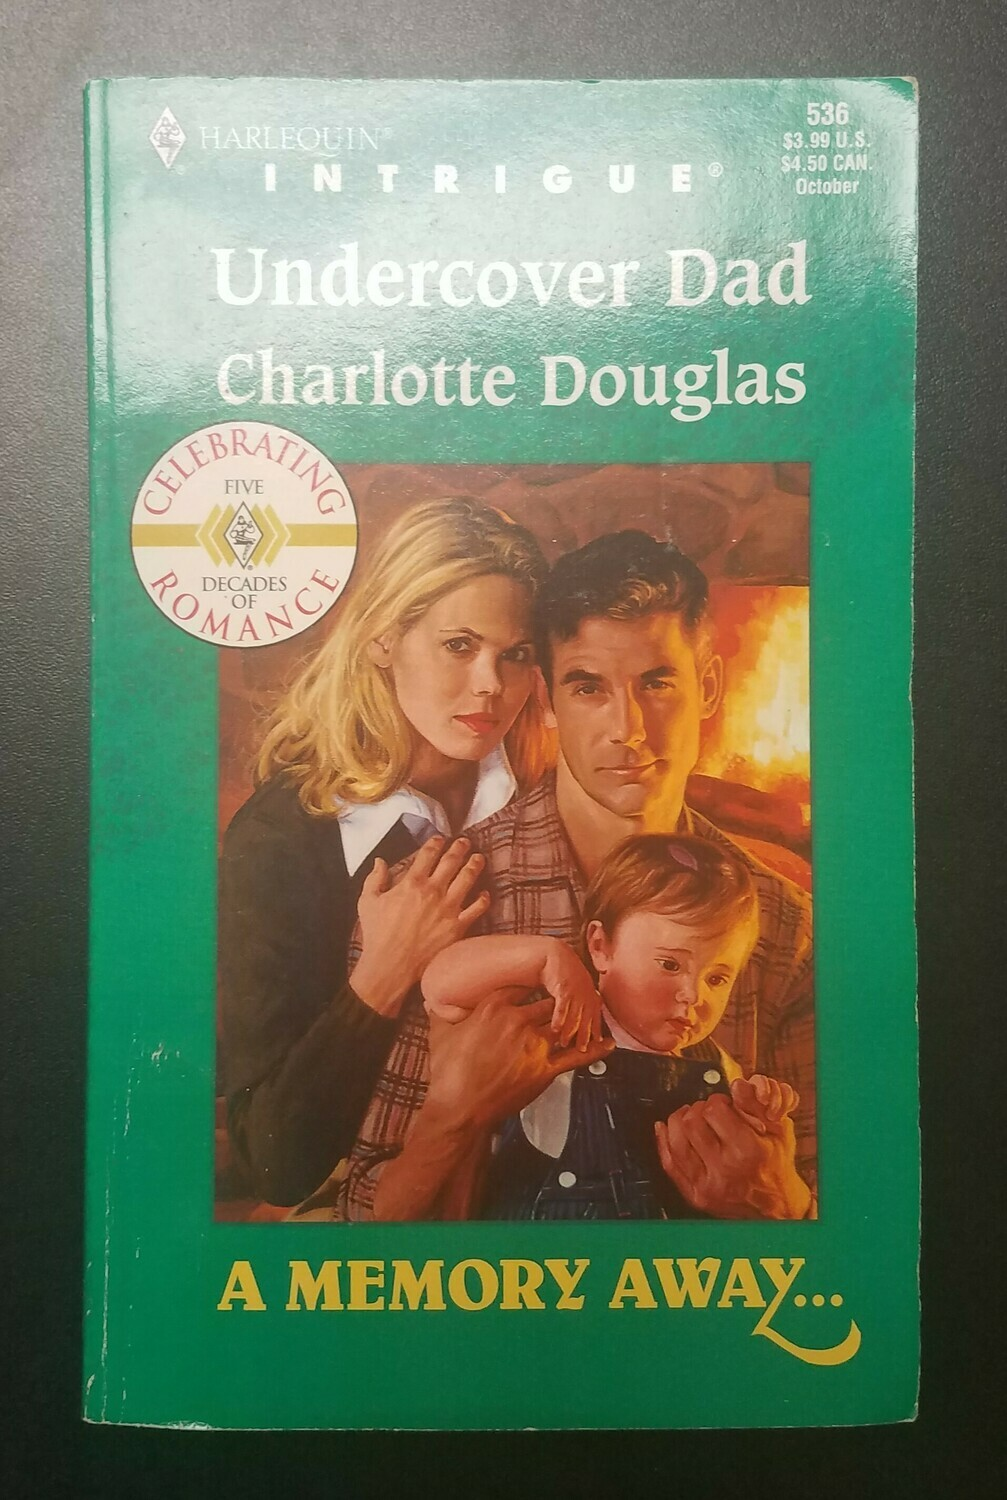 Undercover Dad by Charlotte Douglas